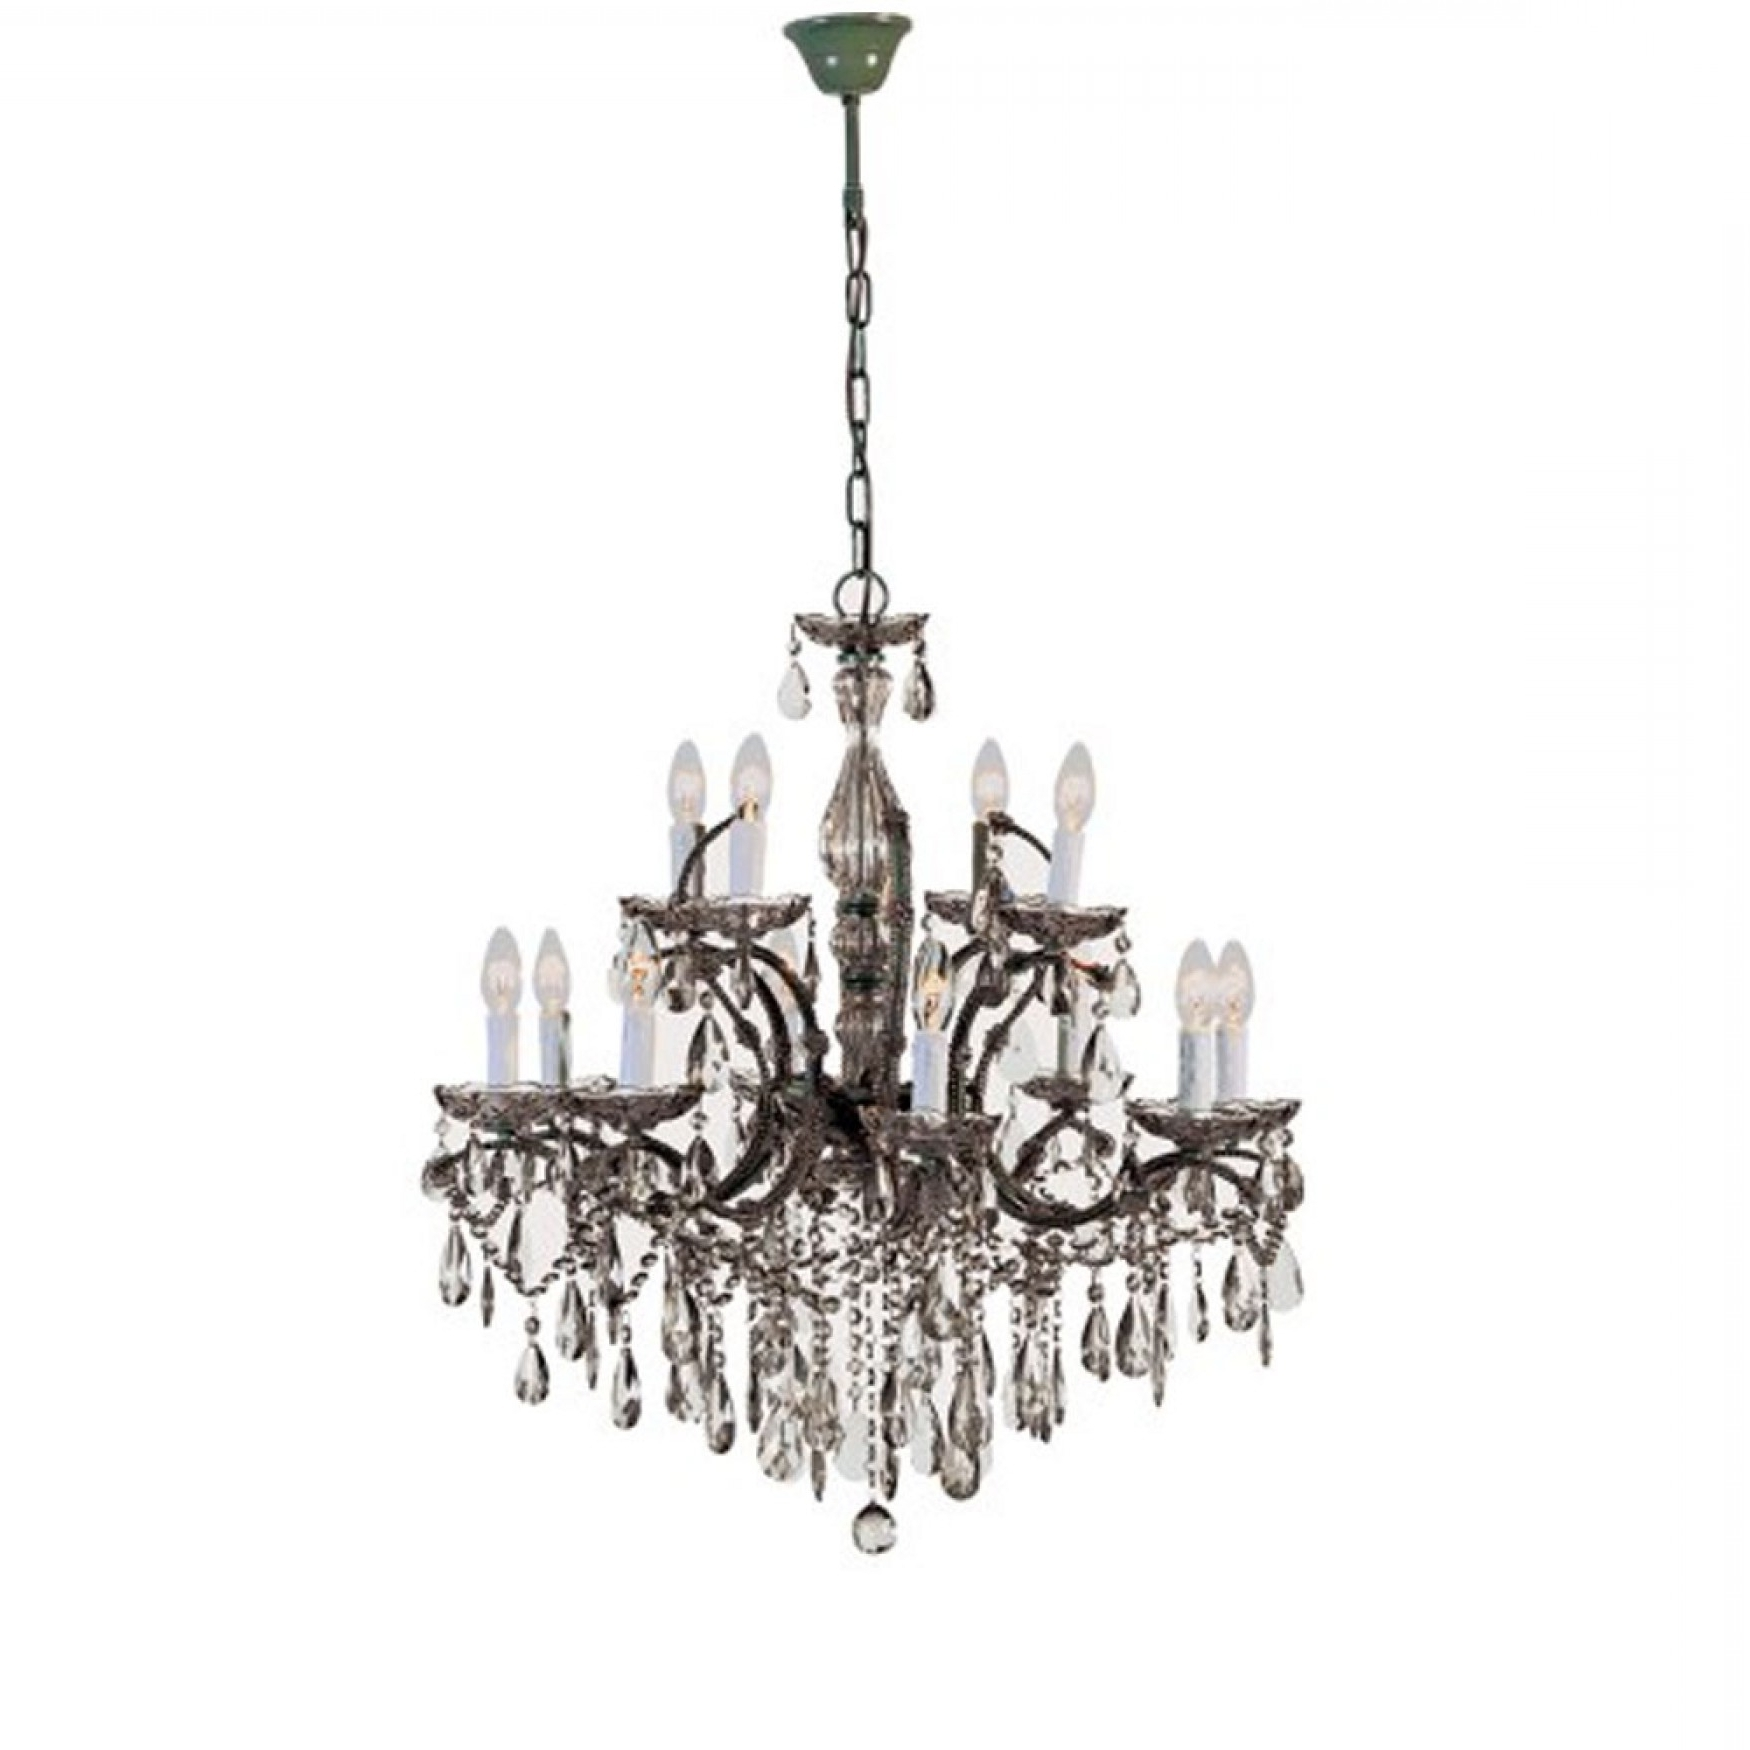 Smoked Glass Chandelier Throughout Favorite 2 Tier Smoked Glass Chandelier (View 15 of 20)